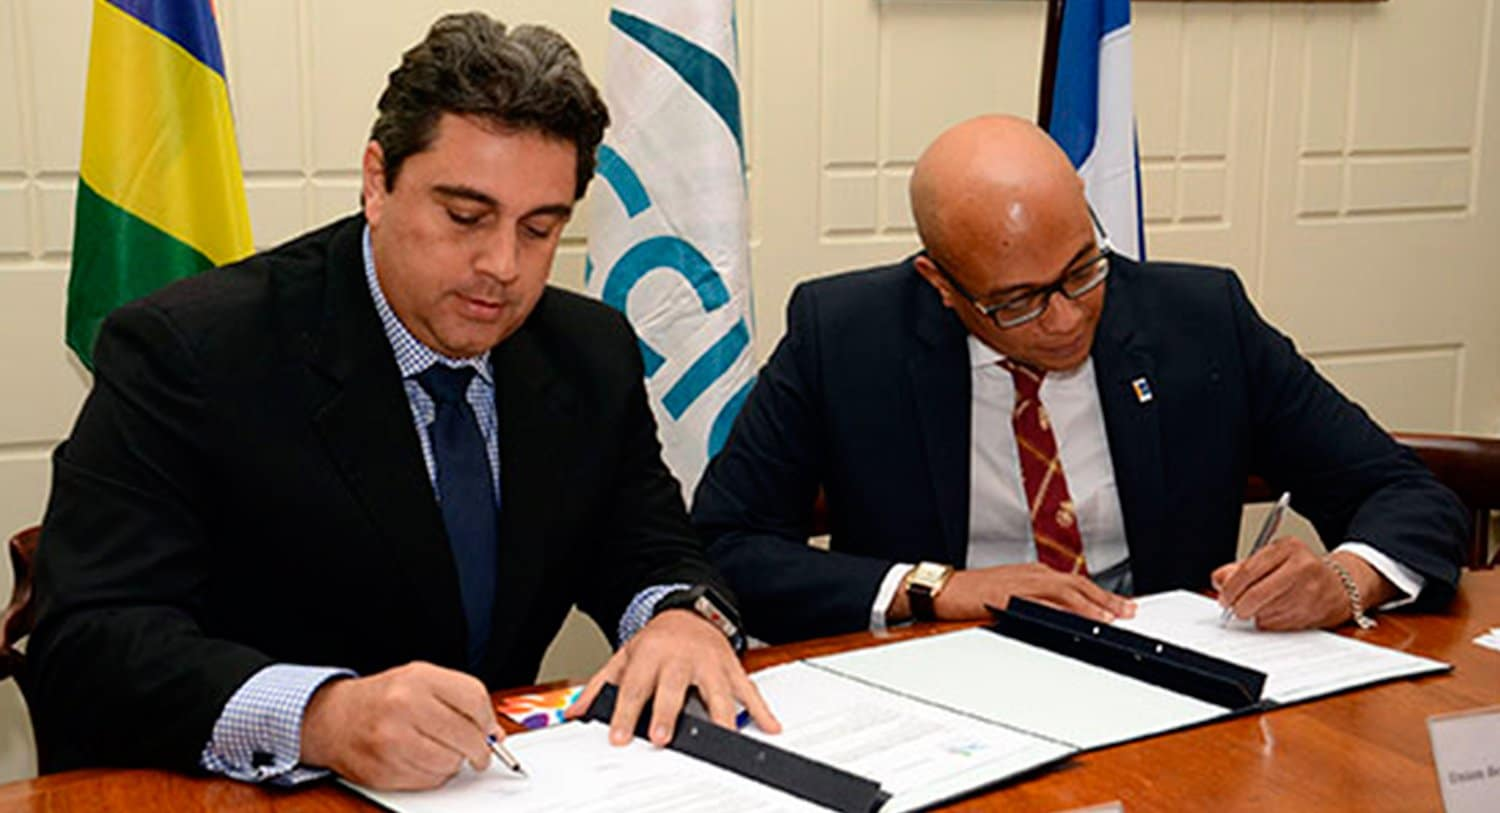 ARTICLE-A partnership with regional scope signed in Mauritius